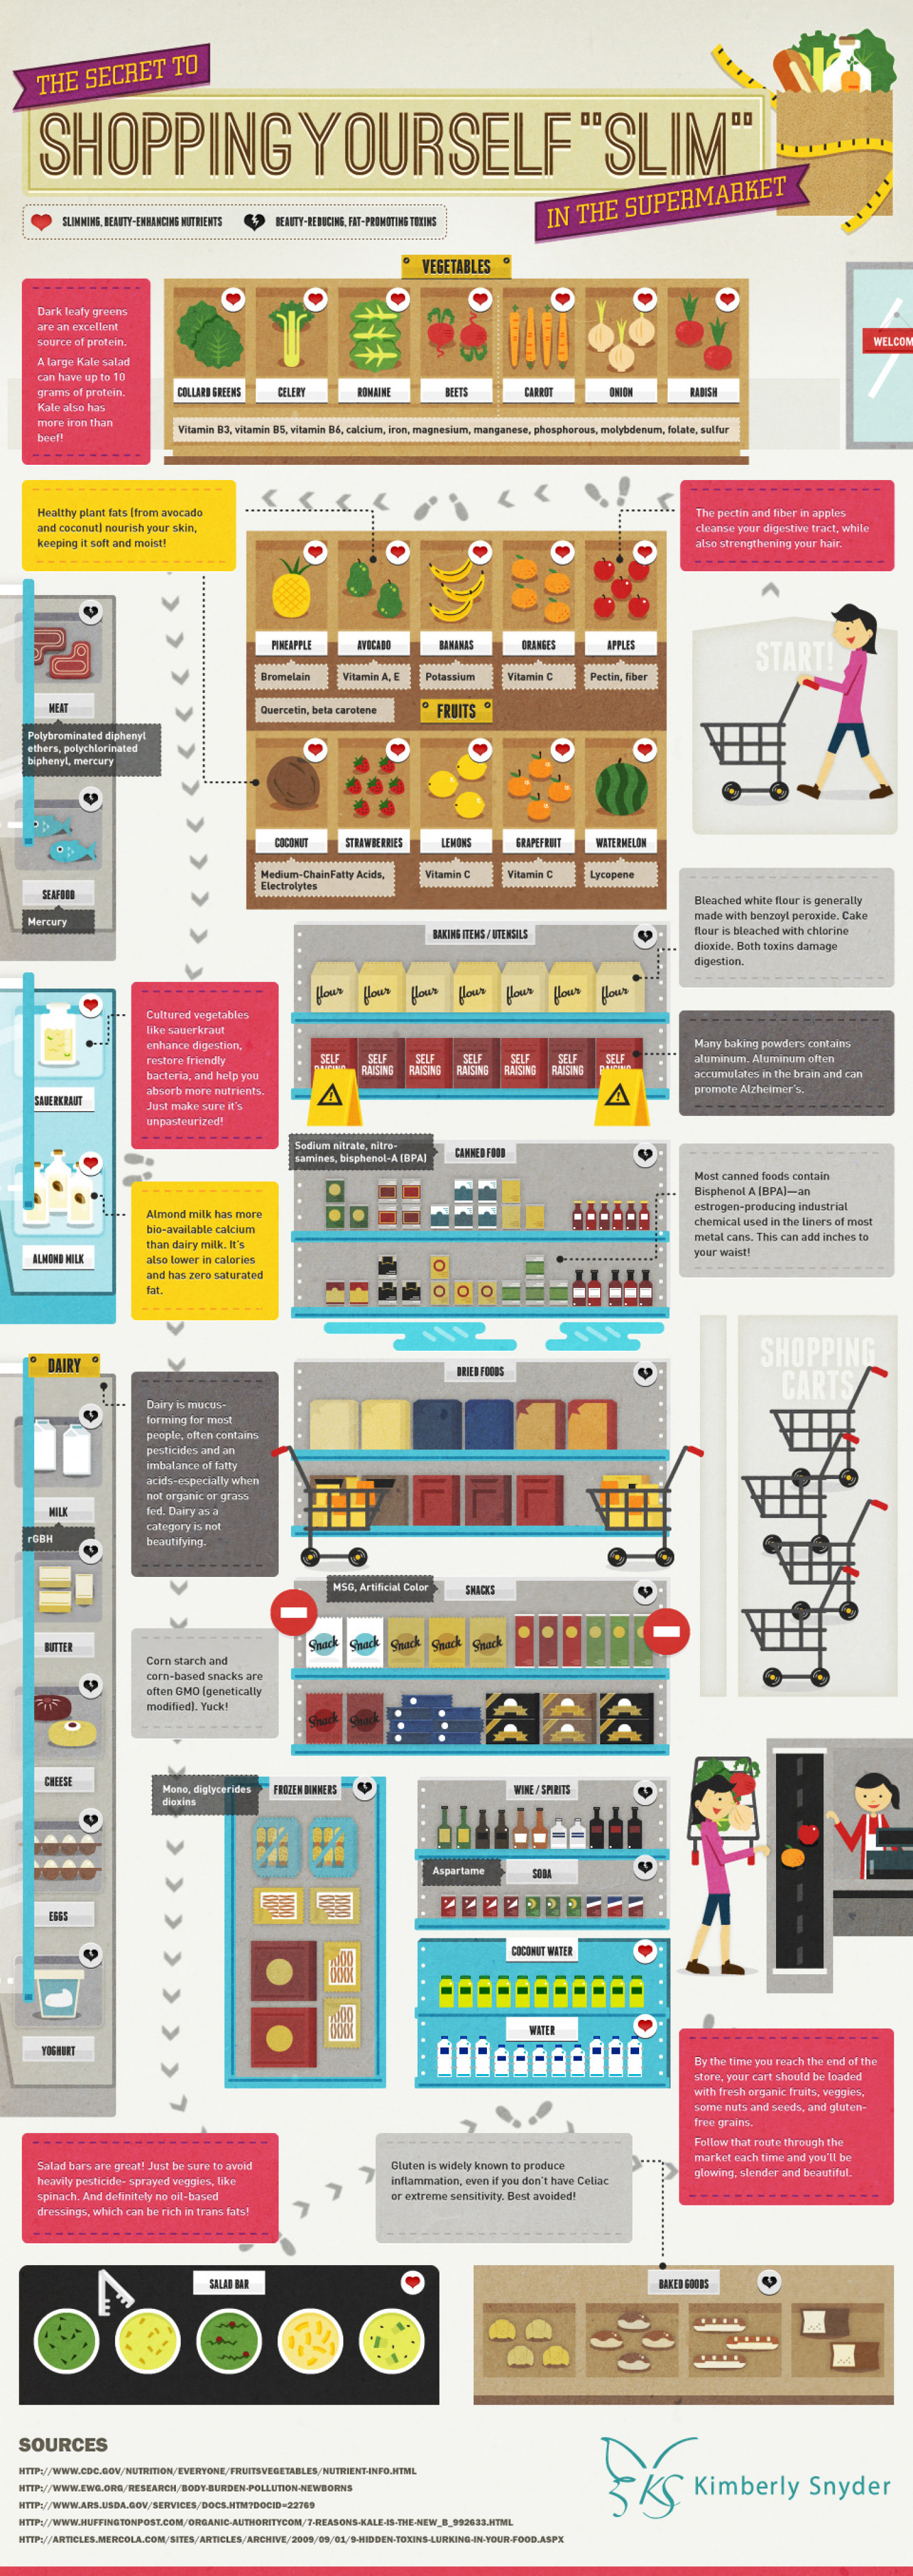 "The Secret To Shopping Yourself ""Slim"" In The Supermarket Infographic"